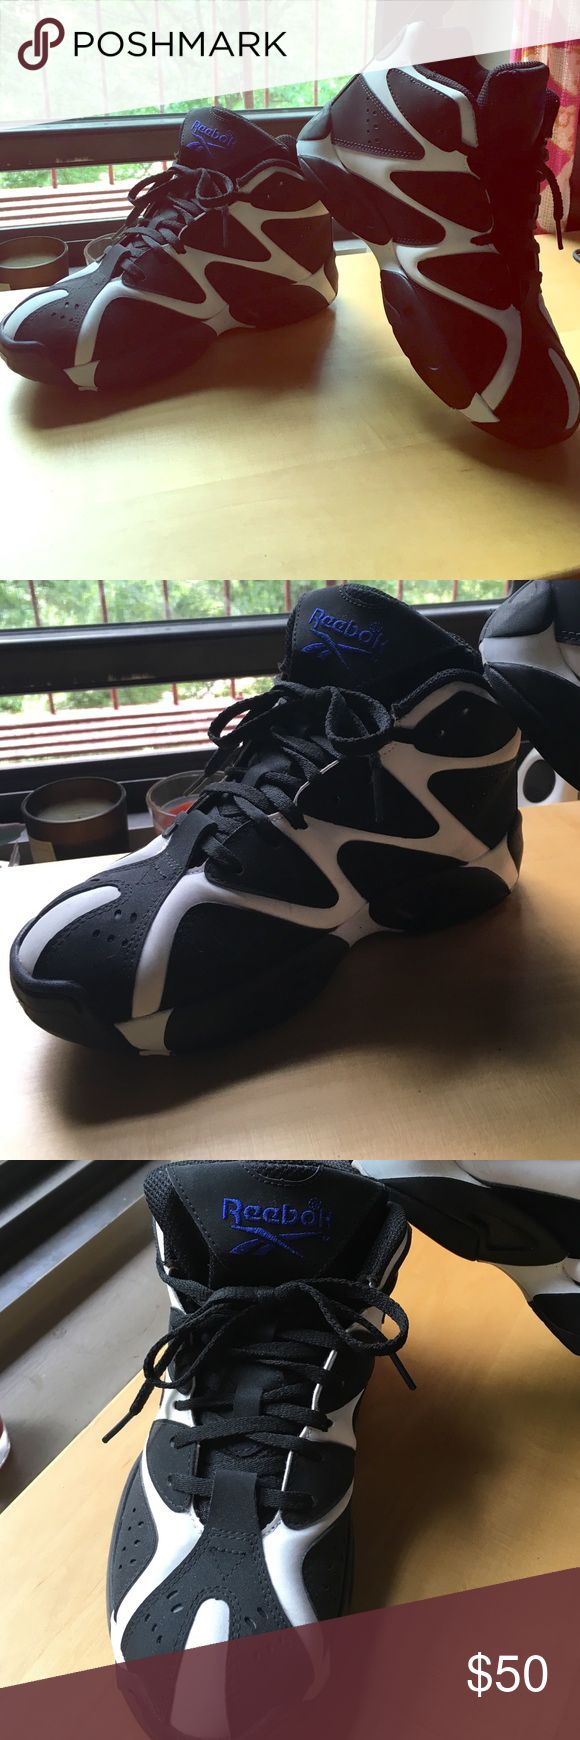 Reebok kamikaz These cute Reeboks are in amazing condition, only worn once. Black and white hightops pair well with leggings, shorts, and even dresses. They are a boys size 4, which equals women's size 6. Reebok Shoes Sneakers